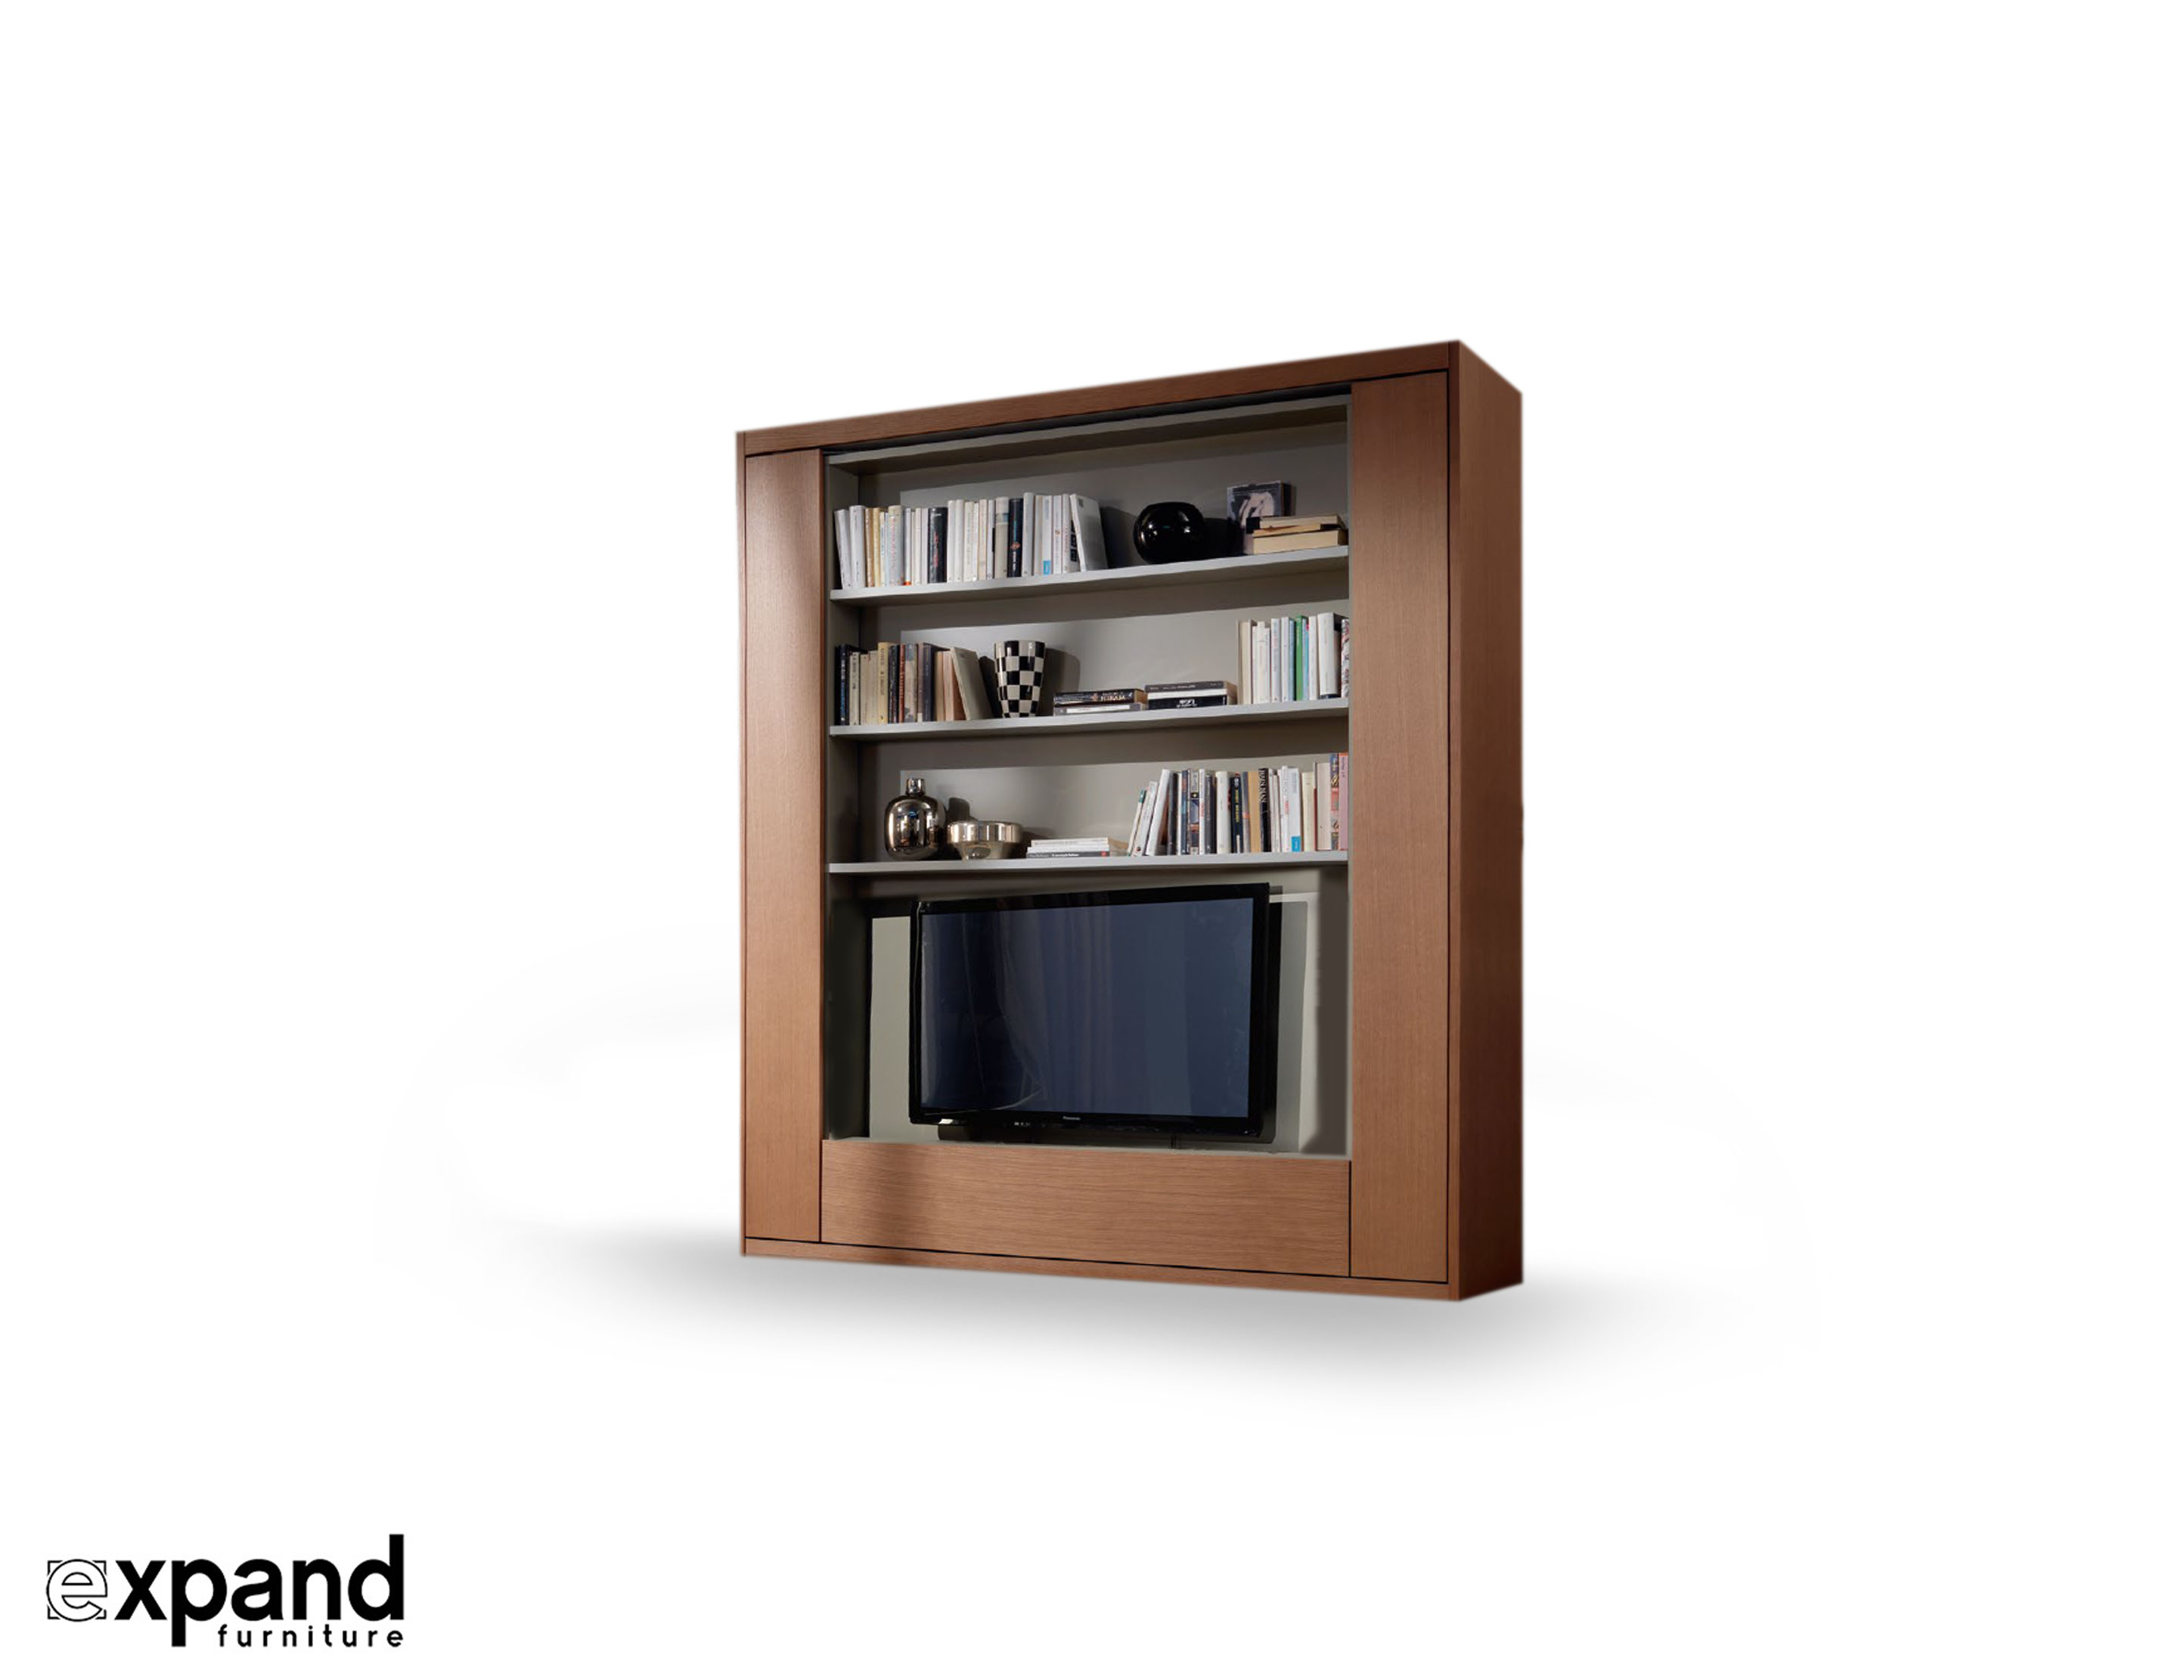 Amore Revolving Tv Murphy Bed Expand Furniture # Meuble Tv Transparent